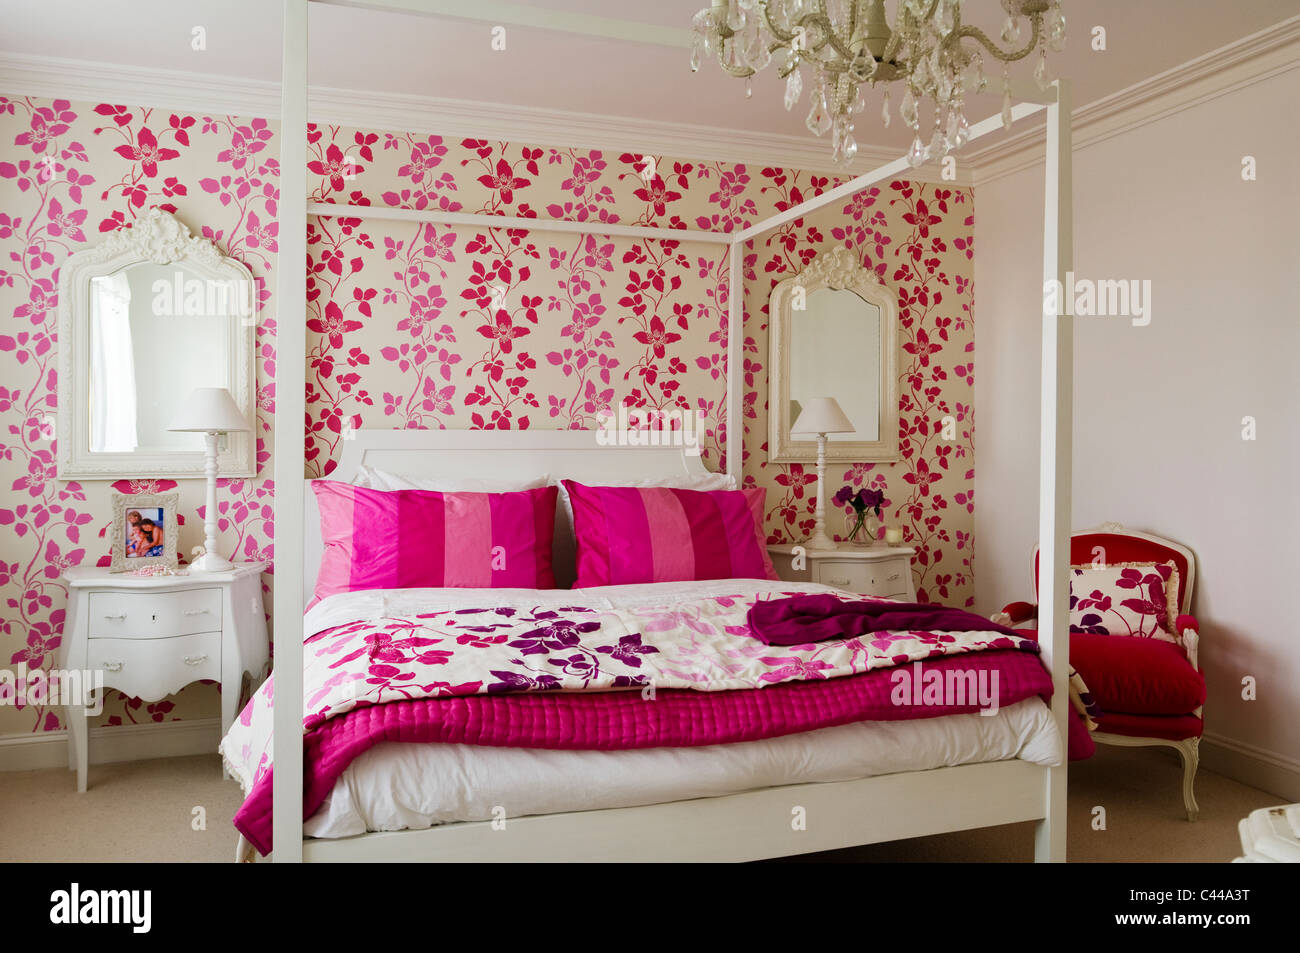 Pink Wallpaper For Bedroom White Fourposter Bed In Bedroom With Designers Guild Pink Floral